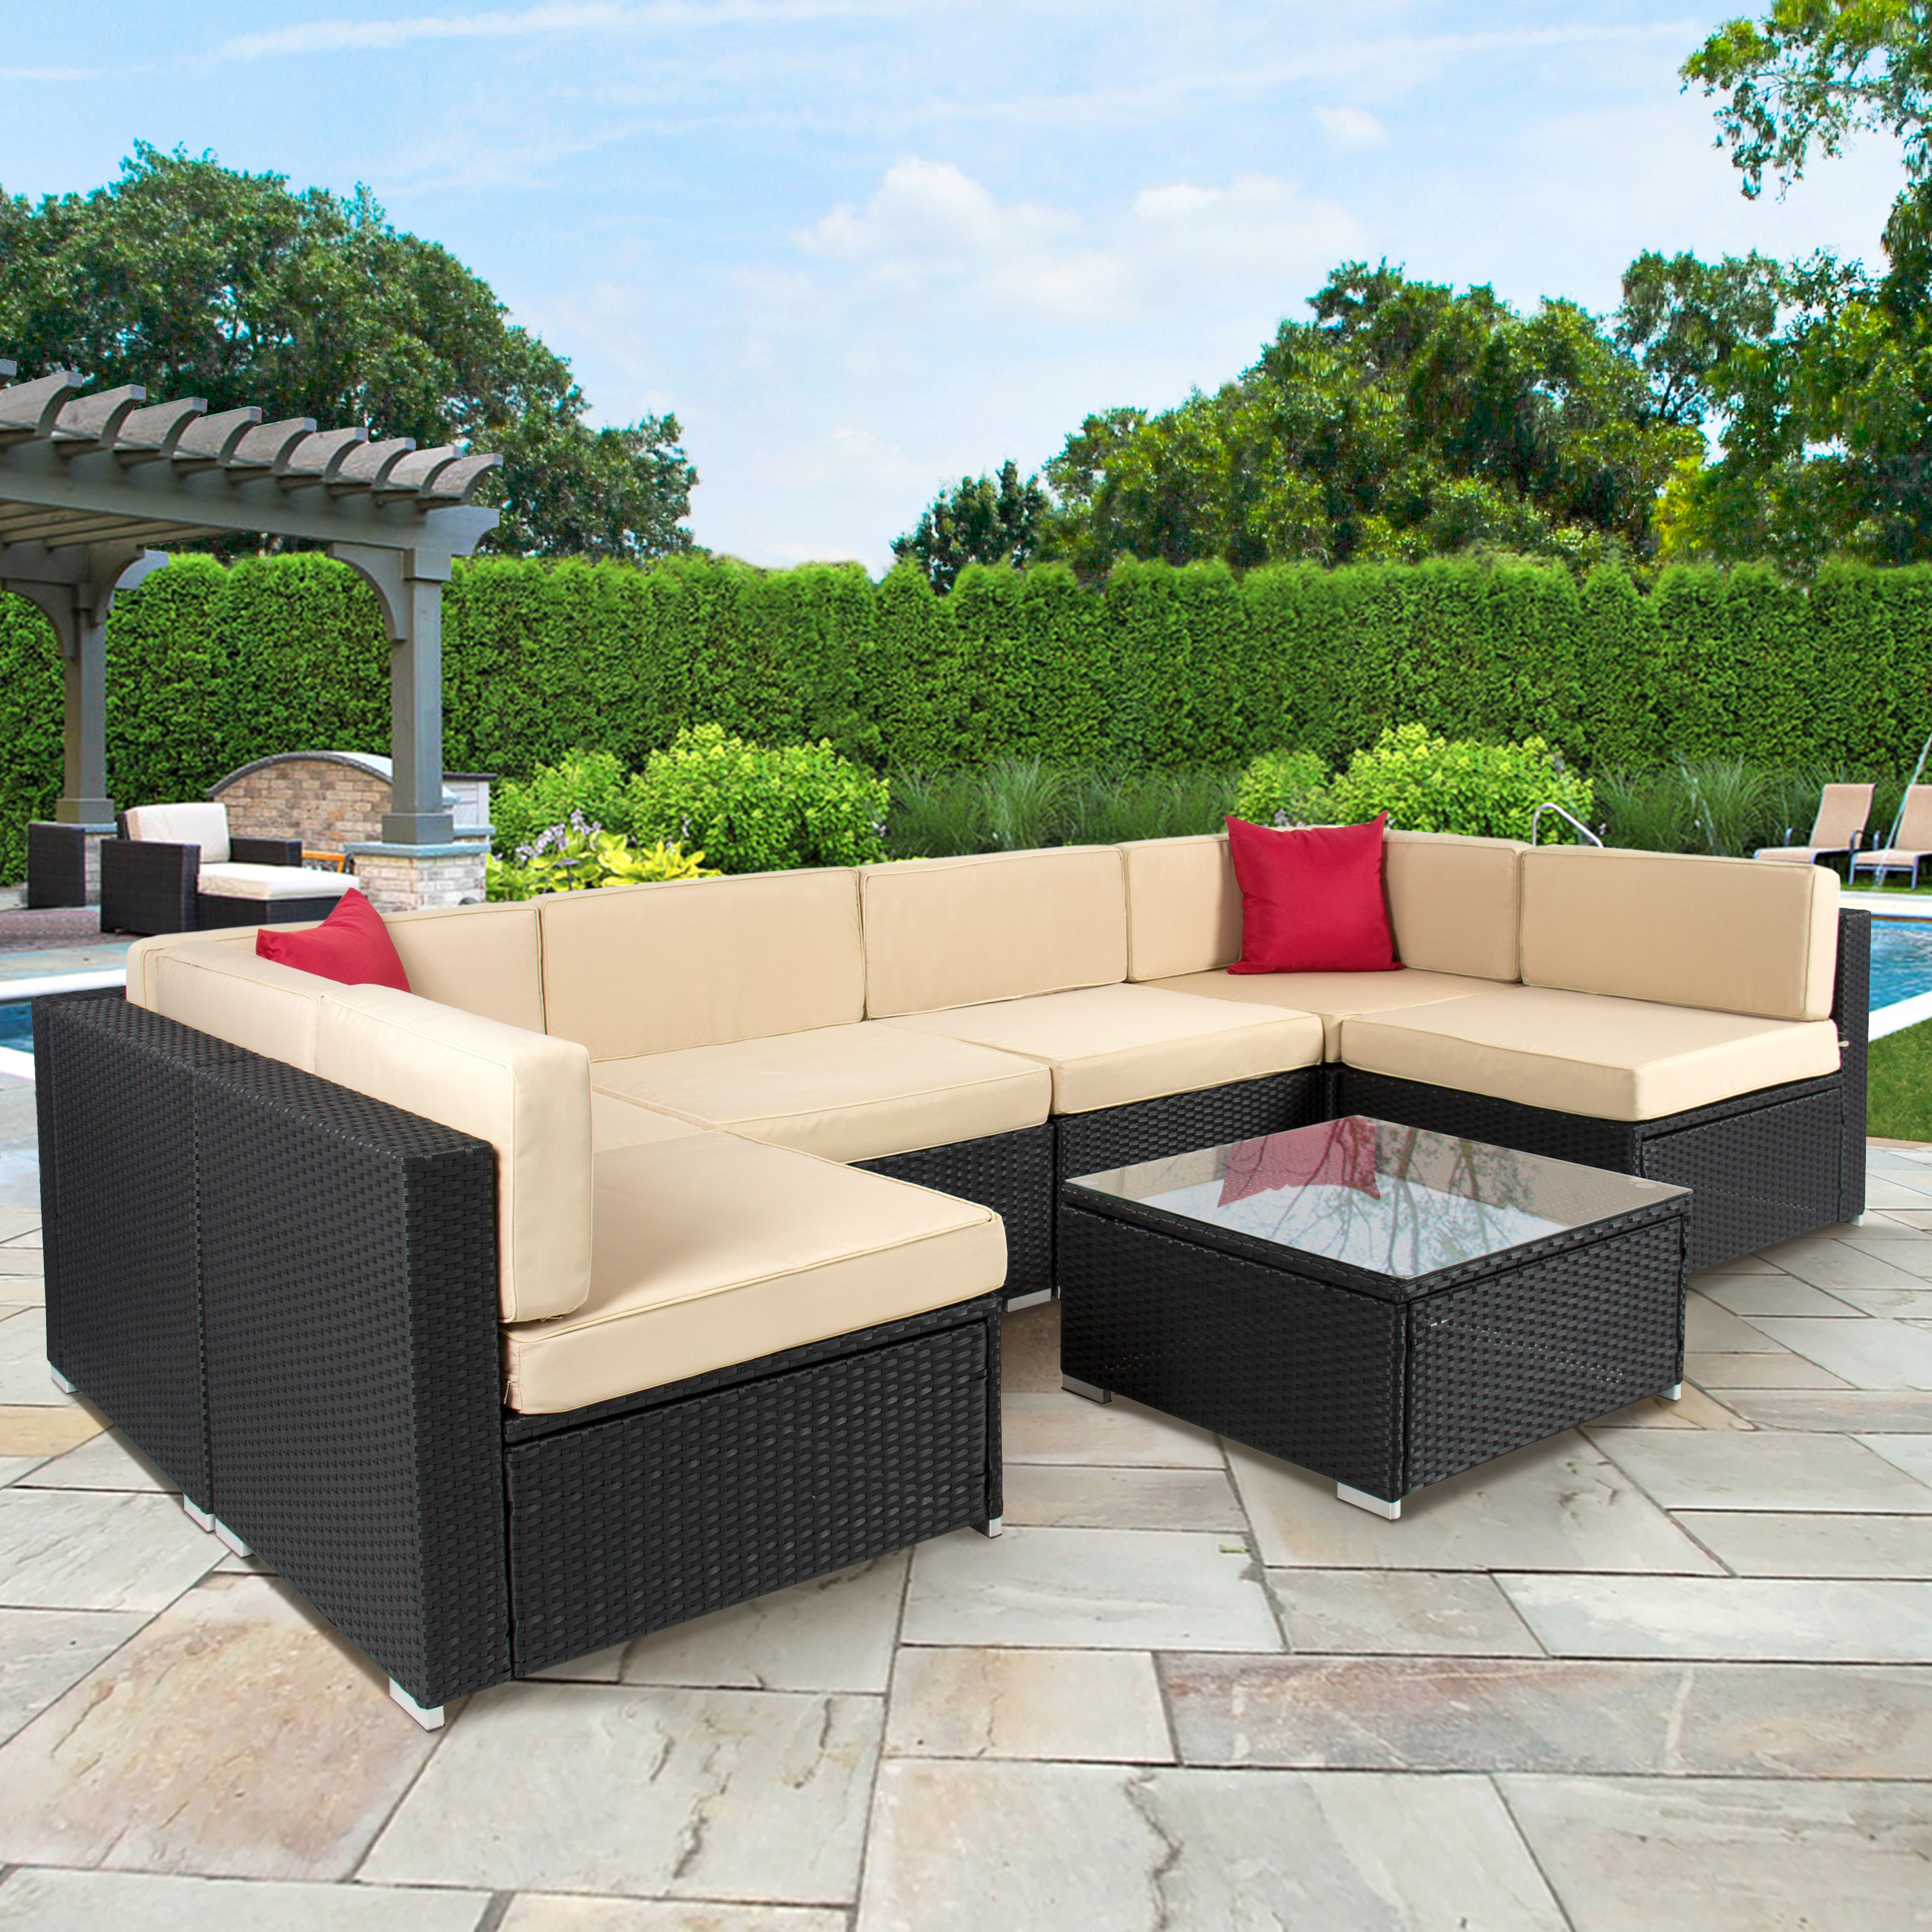 rattan outdoor furniture 4pc outdoor patio garden furniture wicker rattan sofa set black - HRLPJYR